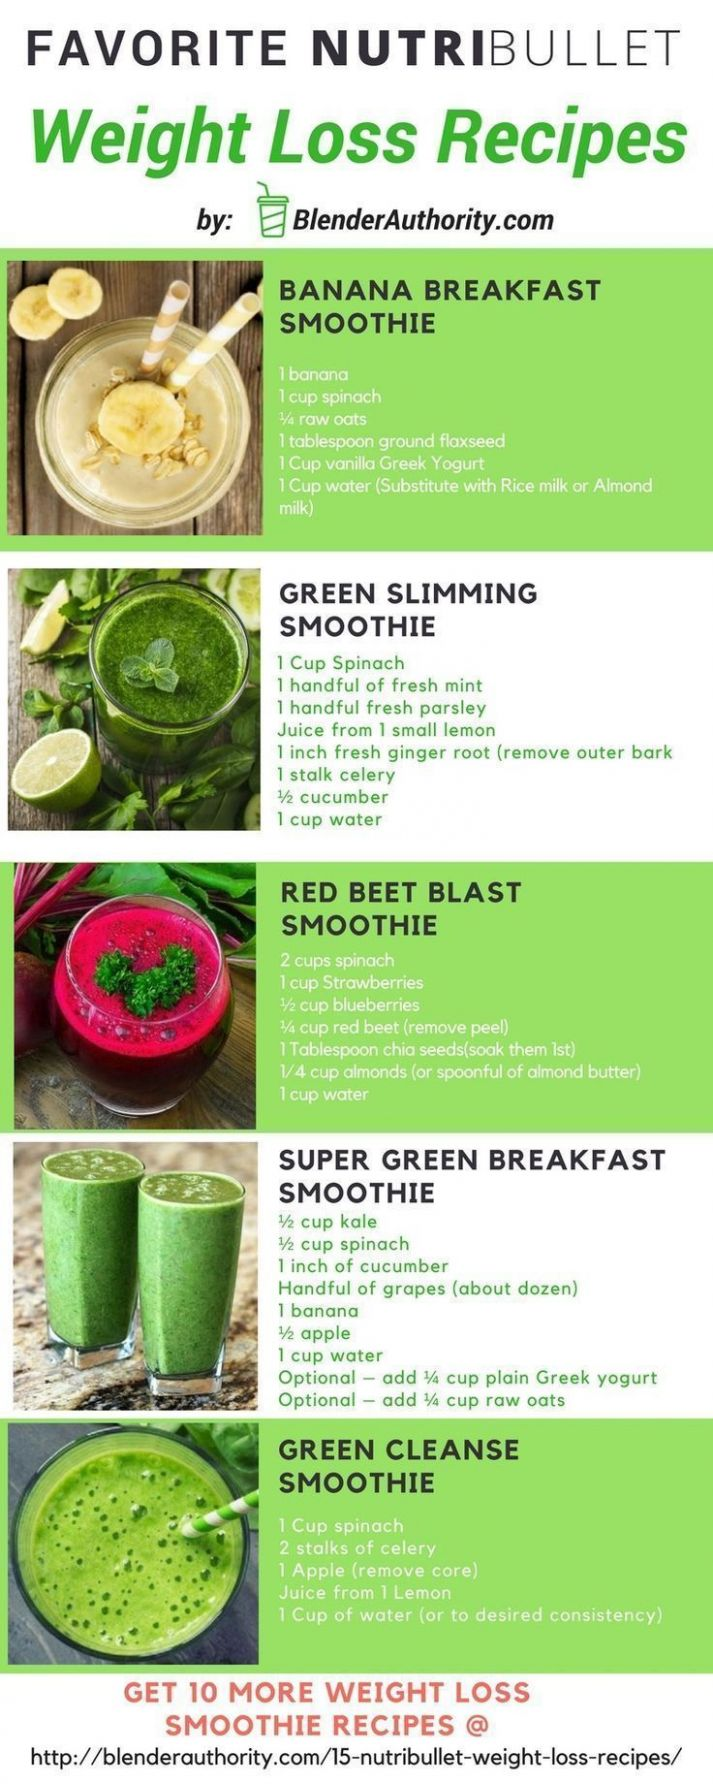 Pin on Weight Loss Smoothies - Juice Recipes For Weight Loss Using Blender